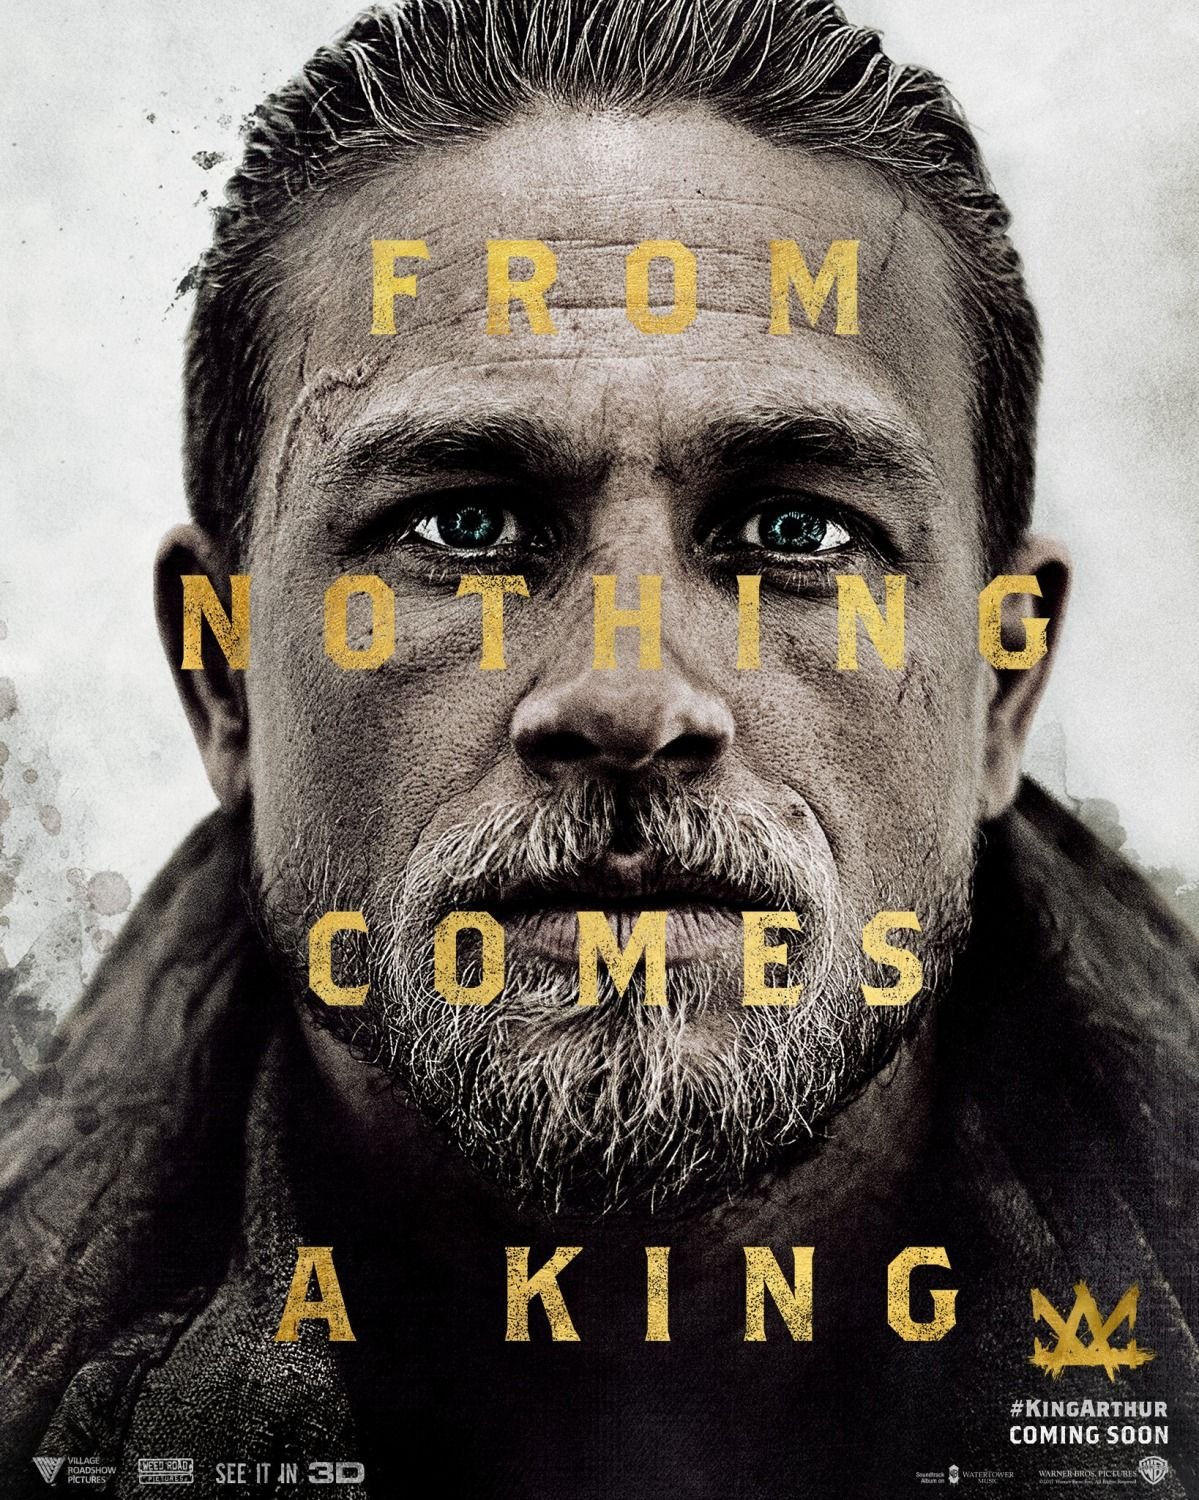 King Arthur Legend Of The Sword 2017 Tagline From Nothing